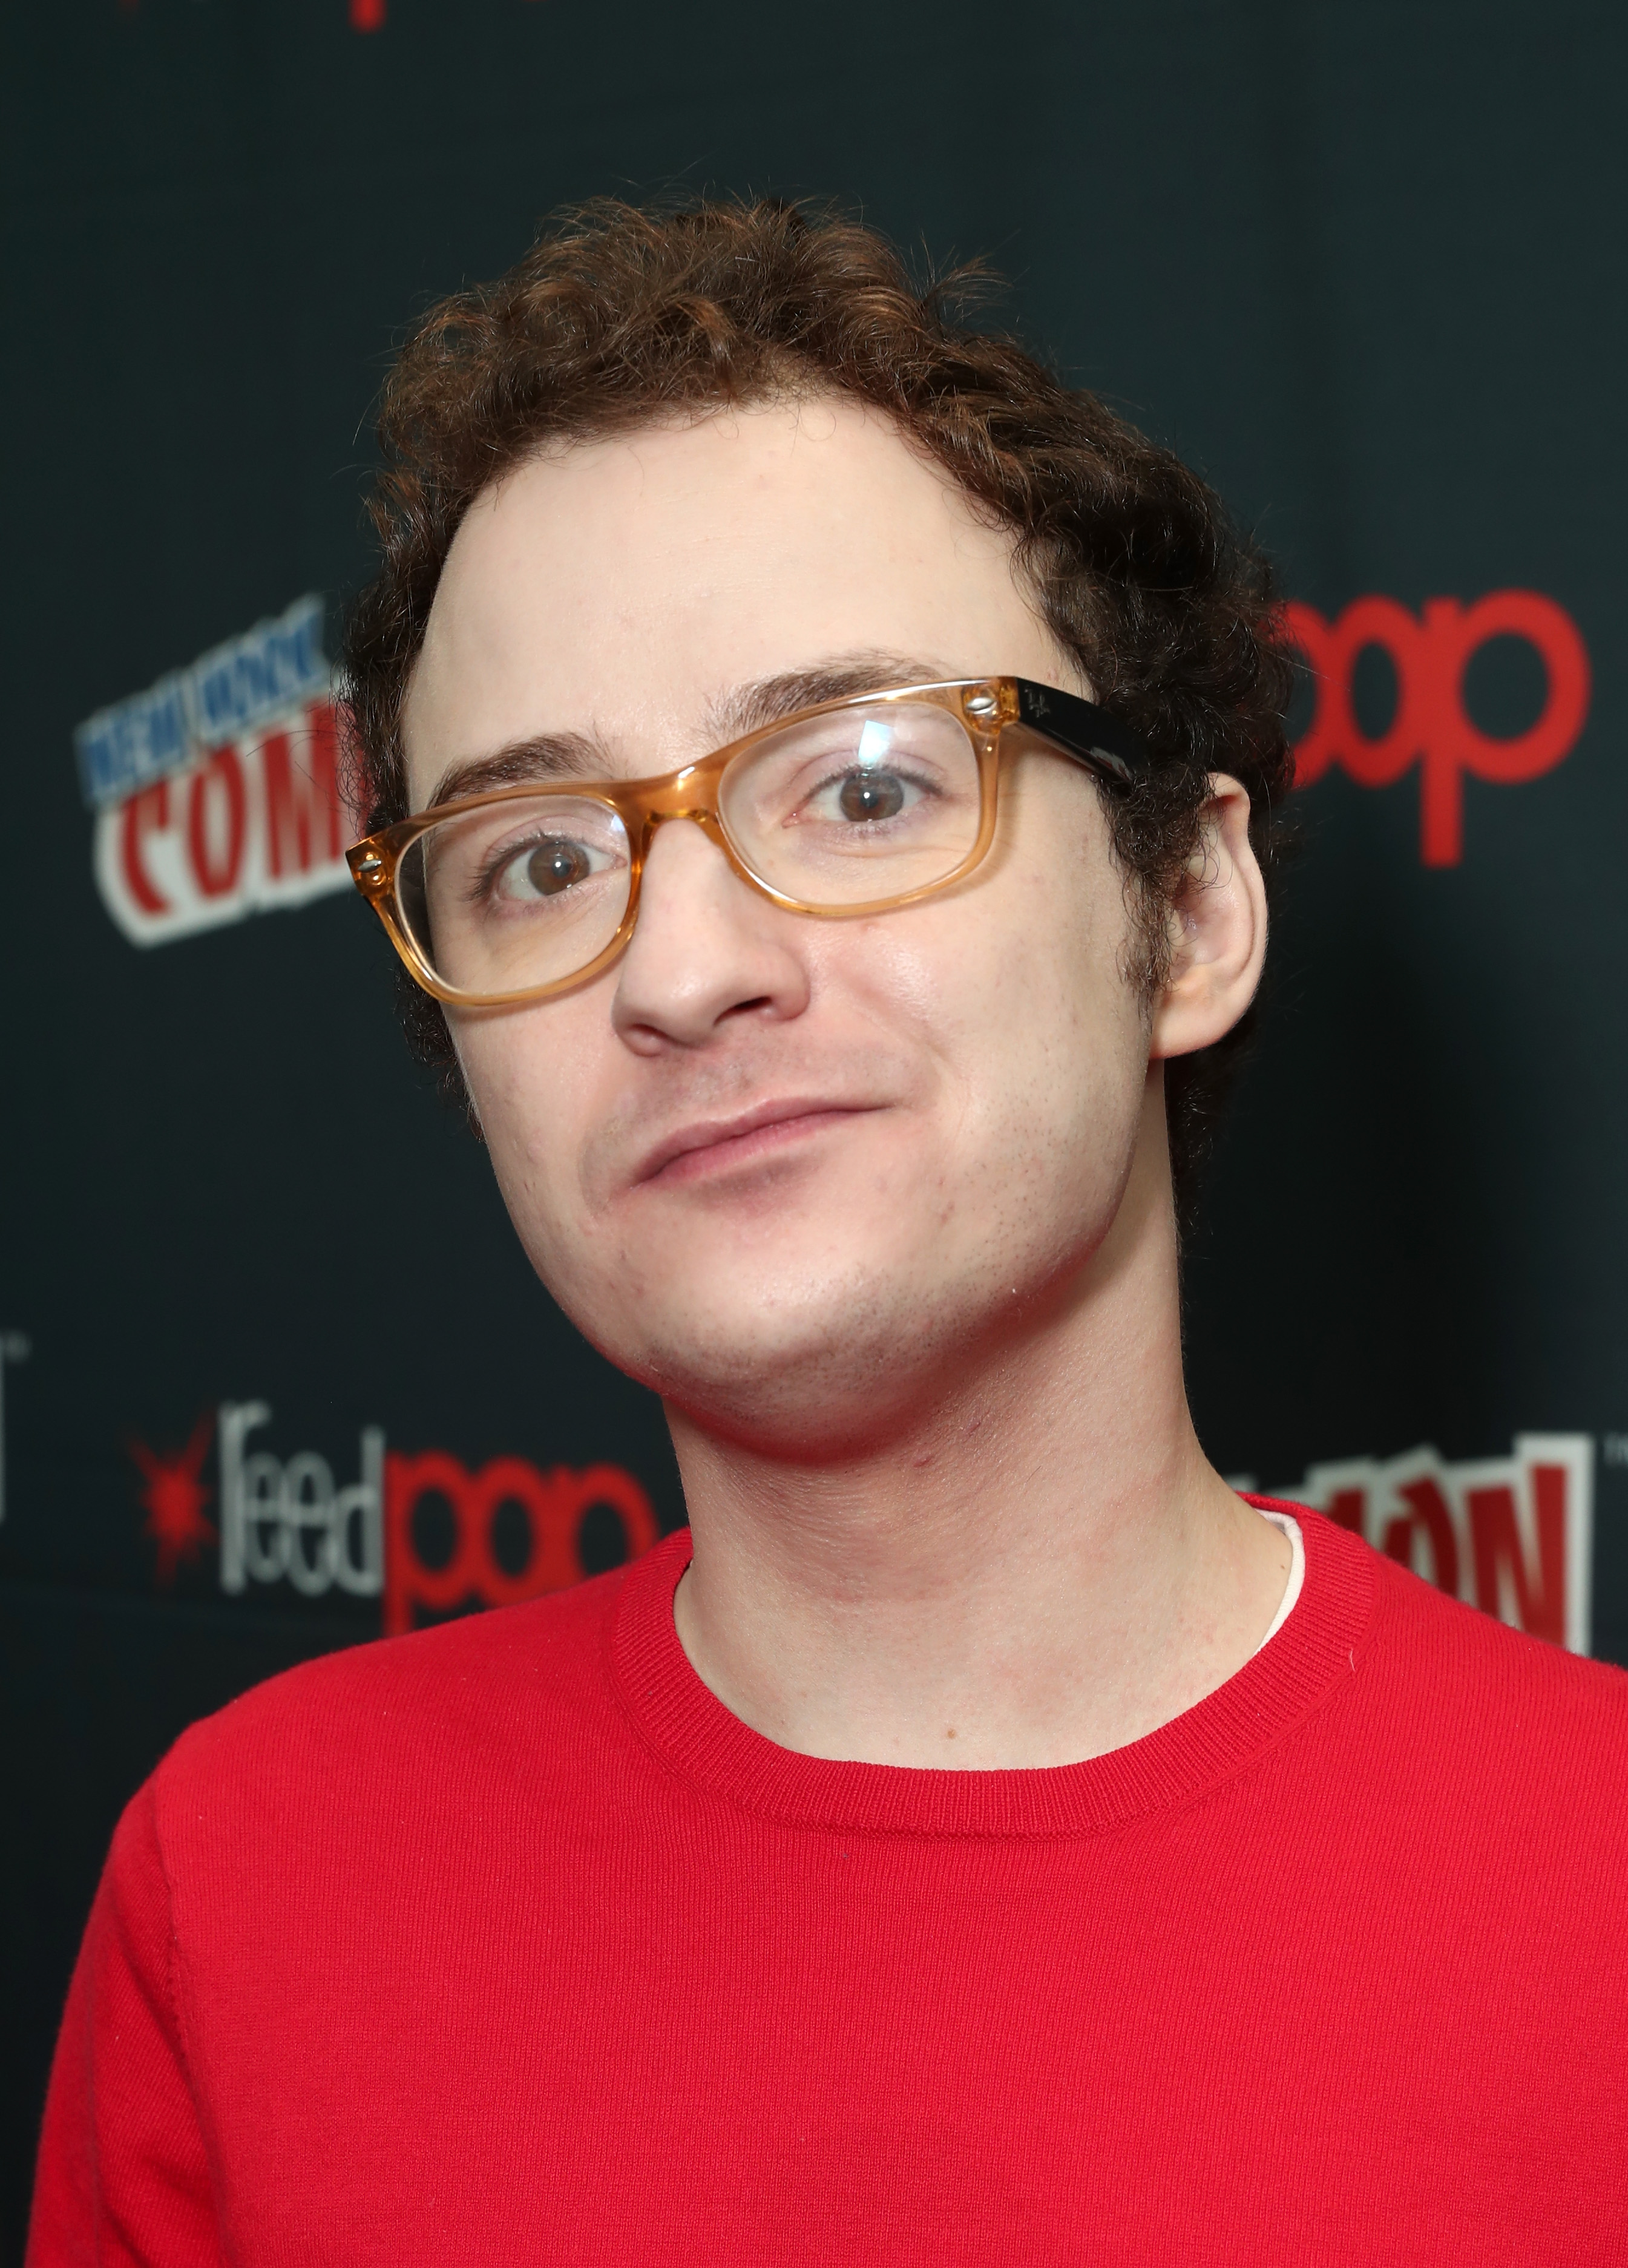 Griffin Newman attends Amazon Prime Video's The Tick New York Comic Con 2017 - Press Room at The Jacob K. Javits Convention Center on October 7, 2017 in New York City. (Photo by Todd Williamson/Getty Images for Amazon)